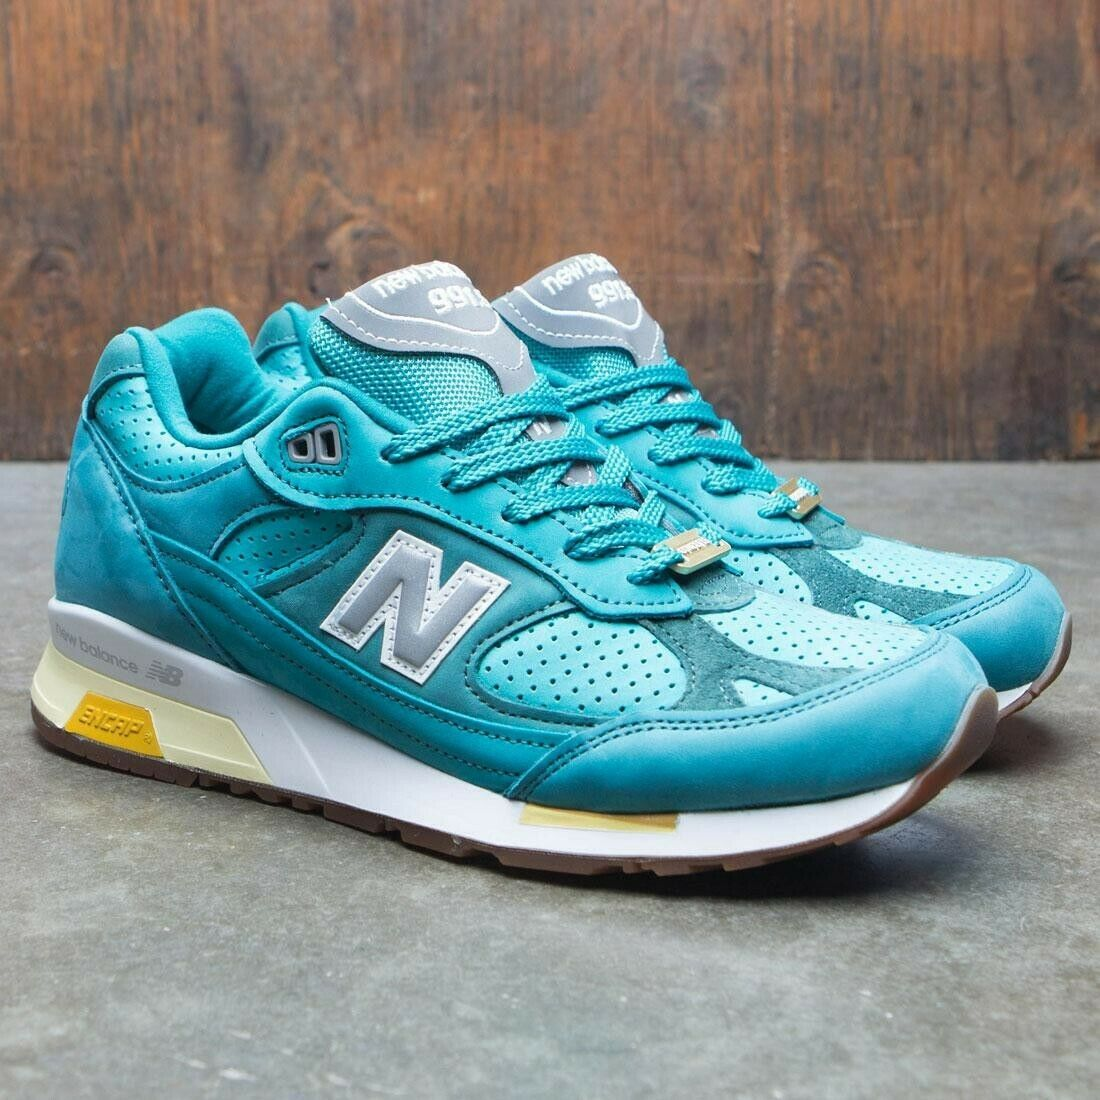 NEW BALANCE 991.5 CONCEPTS LAKE HAVASU U.K. MADE  LIMITED HYBRID EDITION